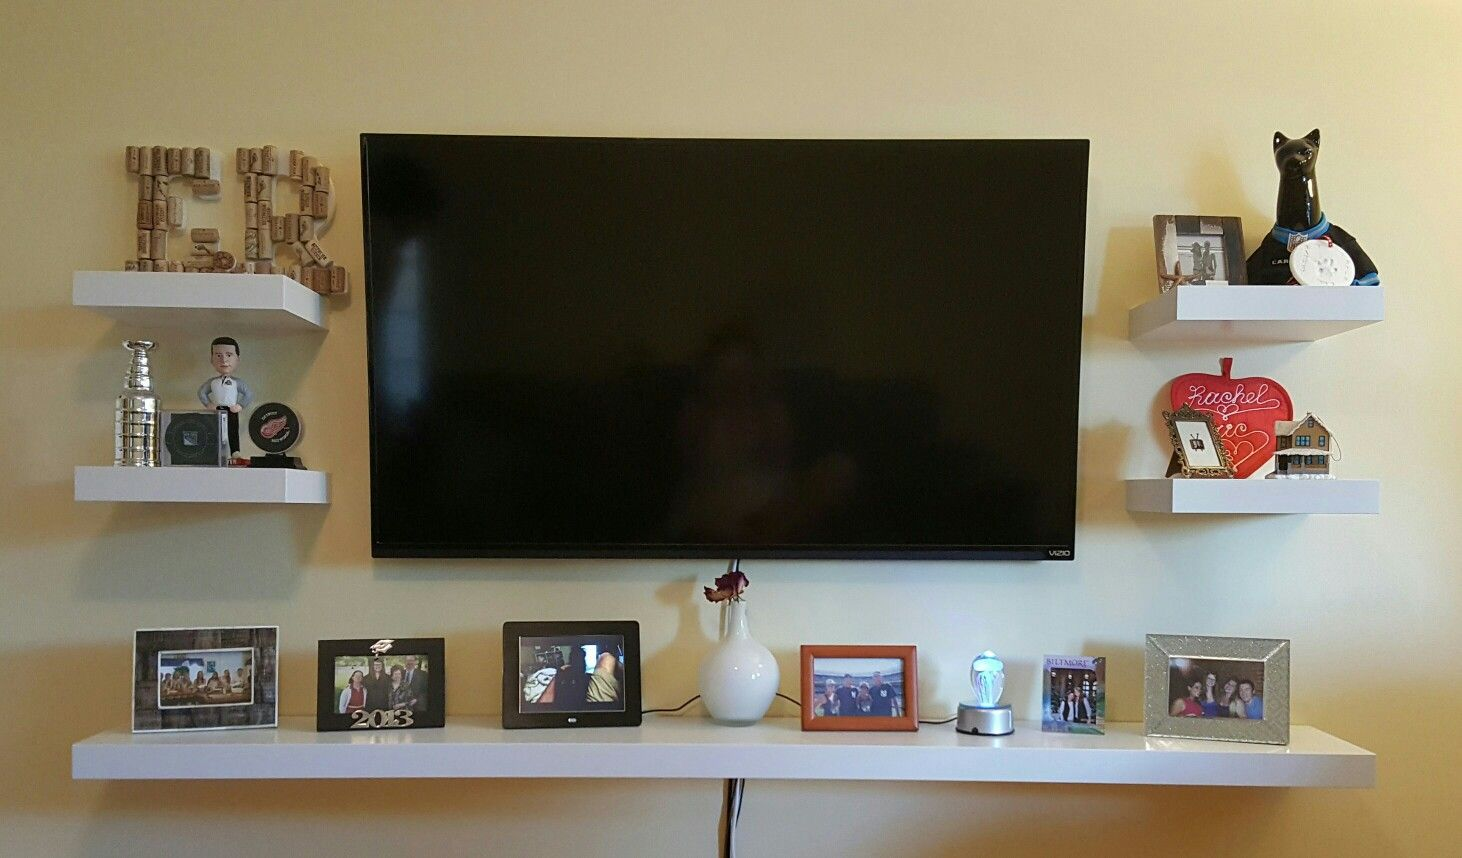 8 Best TV Wall Mounted Ideas for Your Viewing Pleasure